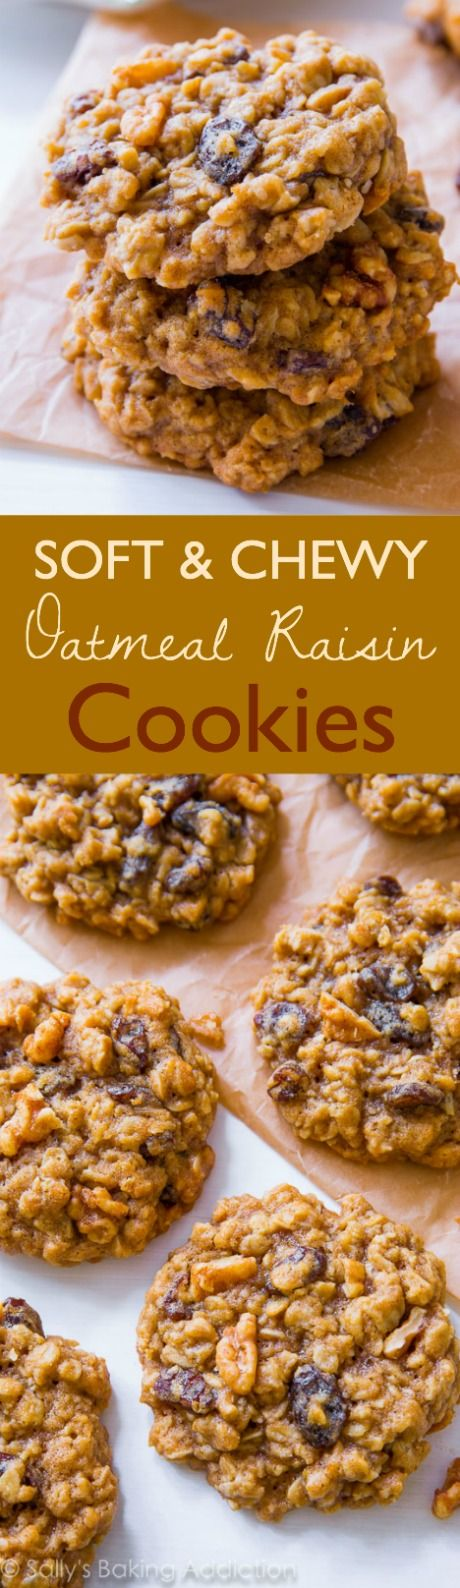 One of my blog's most popular recipes! Soft and chewy oatmeal raisin cookies. Classic and simple!